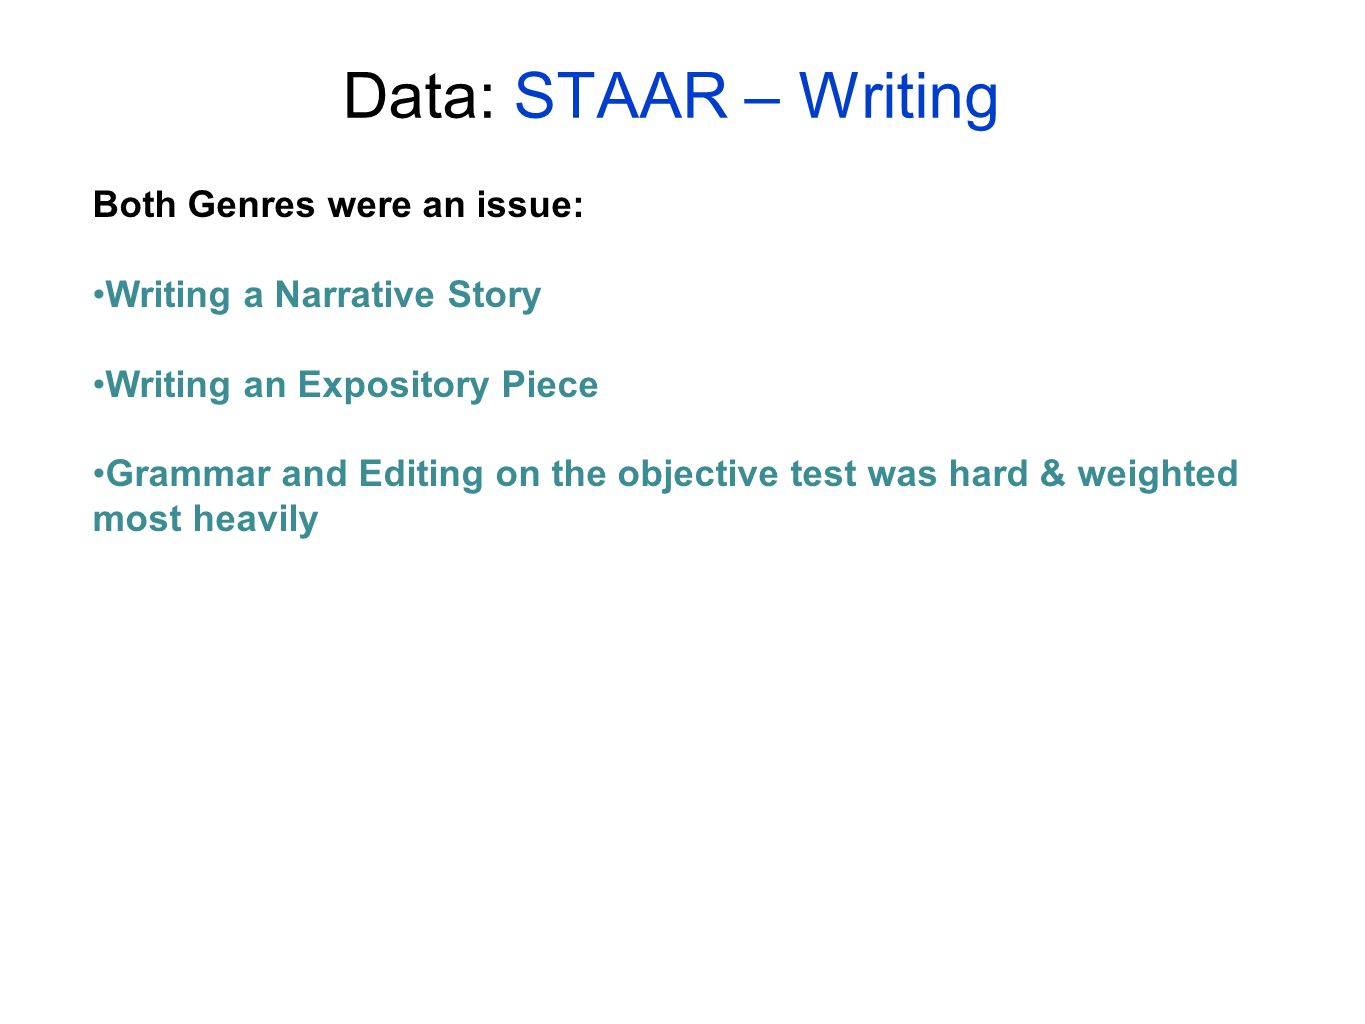 Data: STAAR – Writing Both Genres were an issue: Writing a Narrative Story Writing an Expository Piece Grammar and Editing on the objective test was hard & weighted most heavily